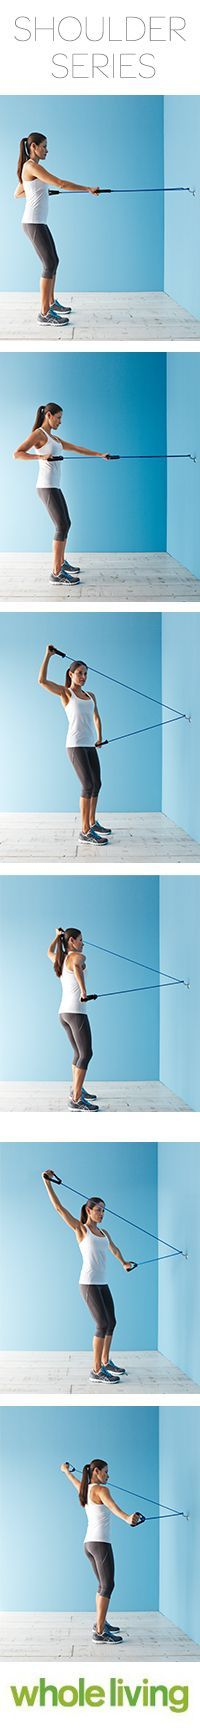 Before you swim: Try these moves that strengthen the obliques, shoulders, and arms, Wholeliving.com